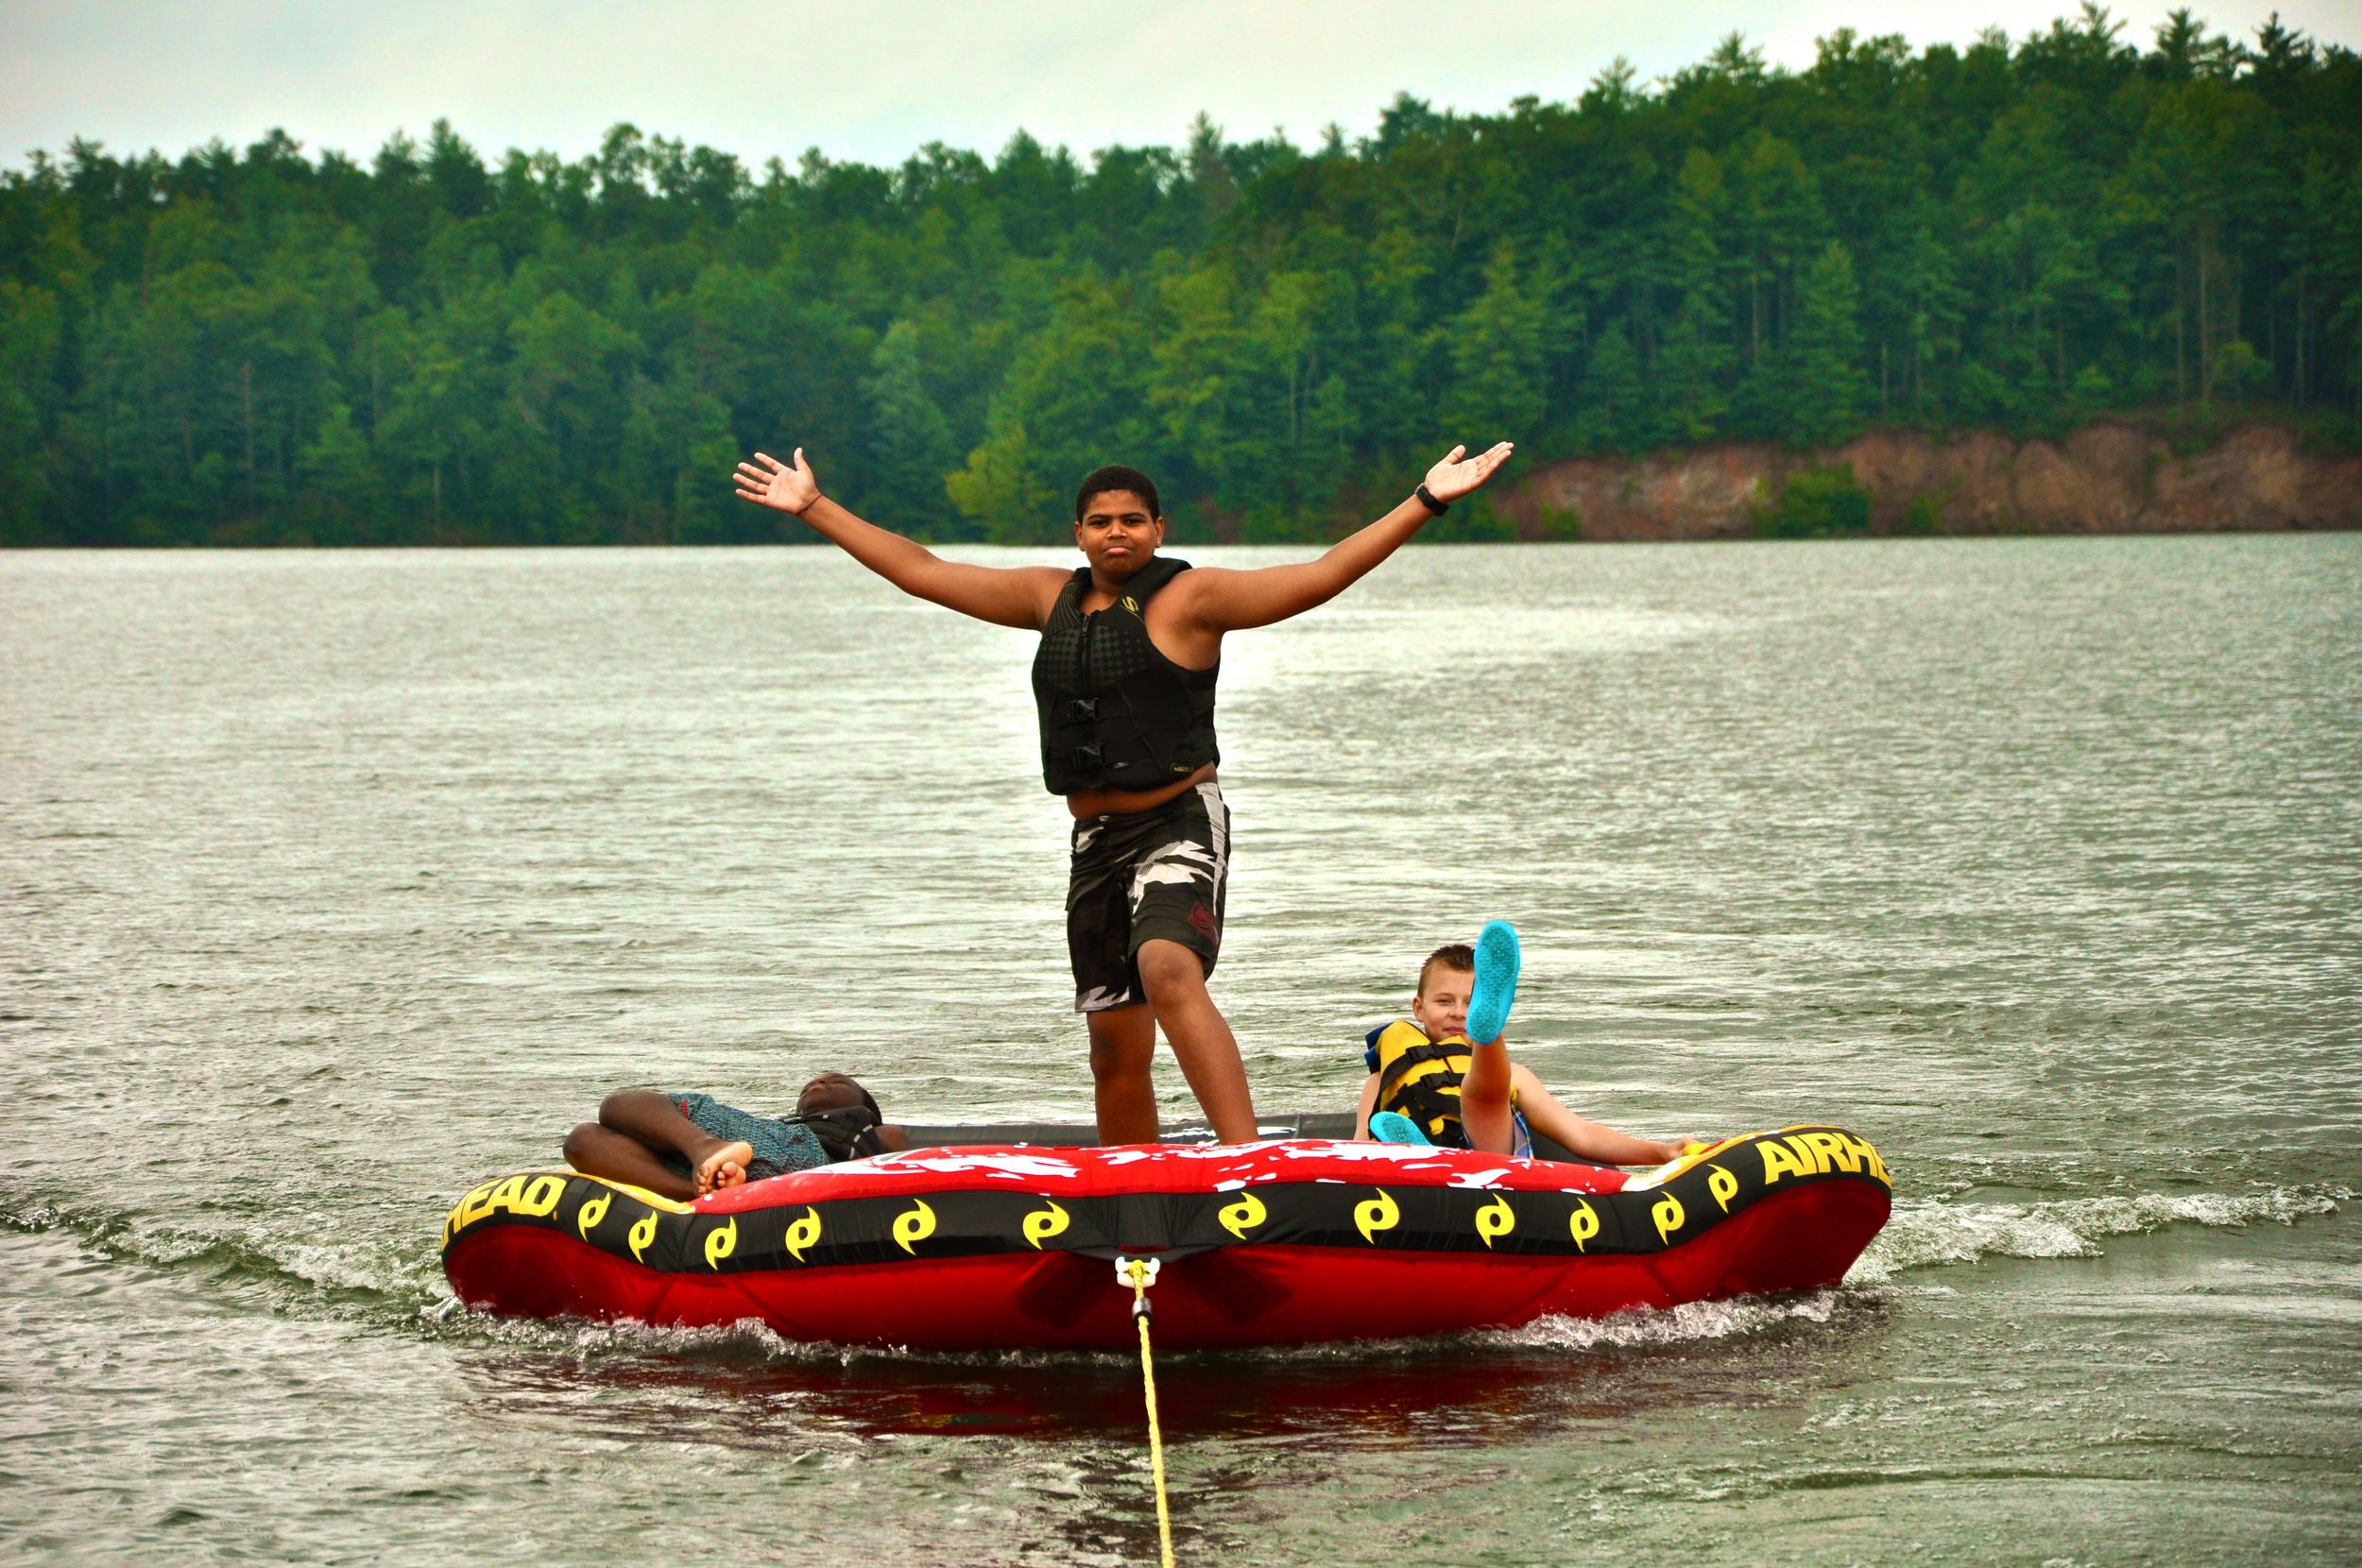 luca-is-a-crazy-man-standing-up-on-the-tube.jpg